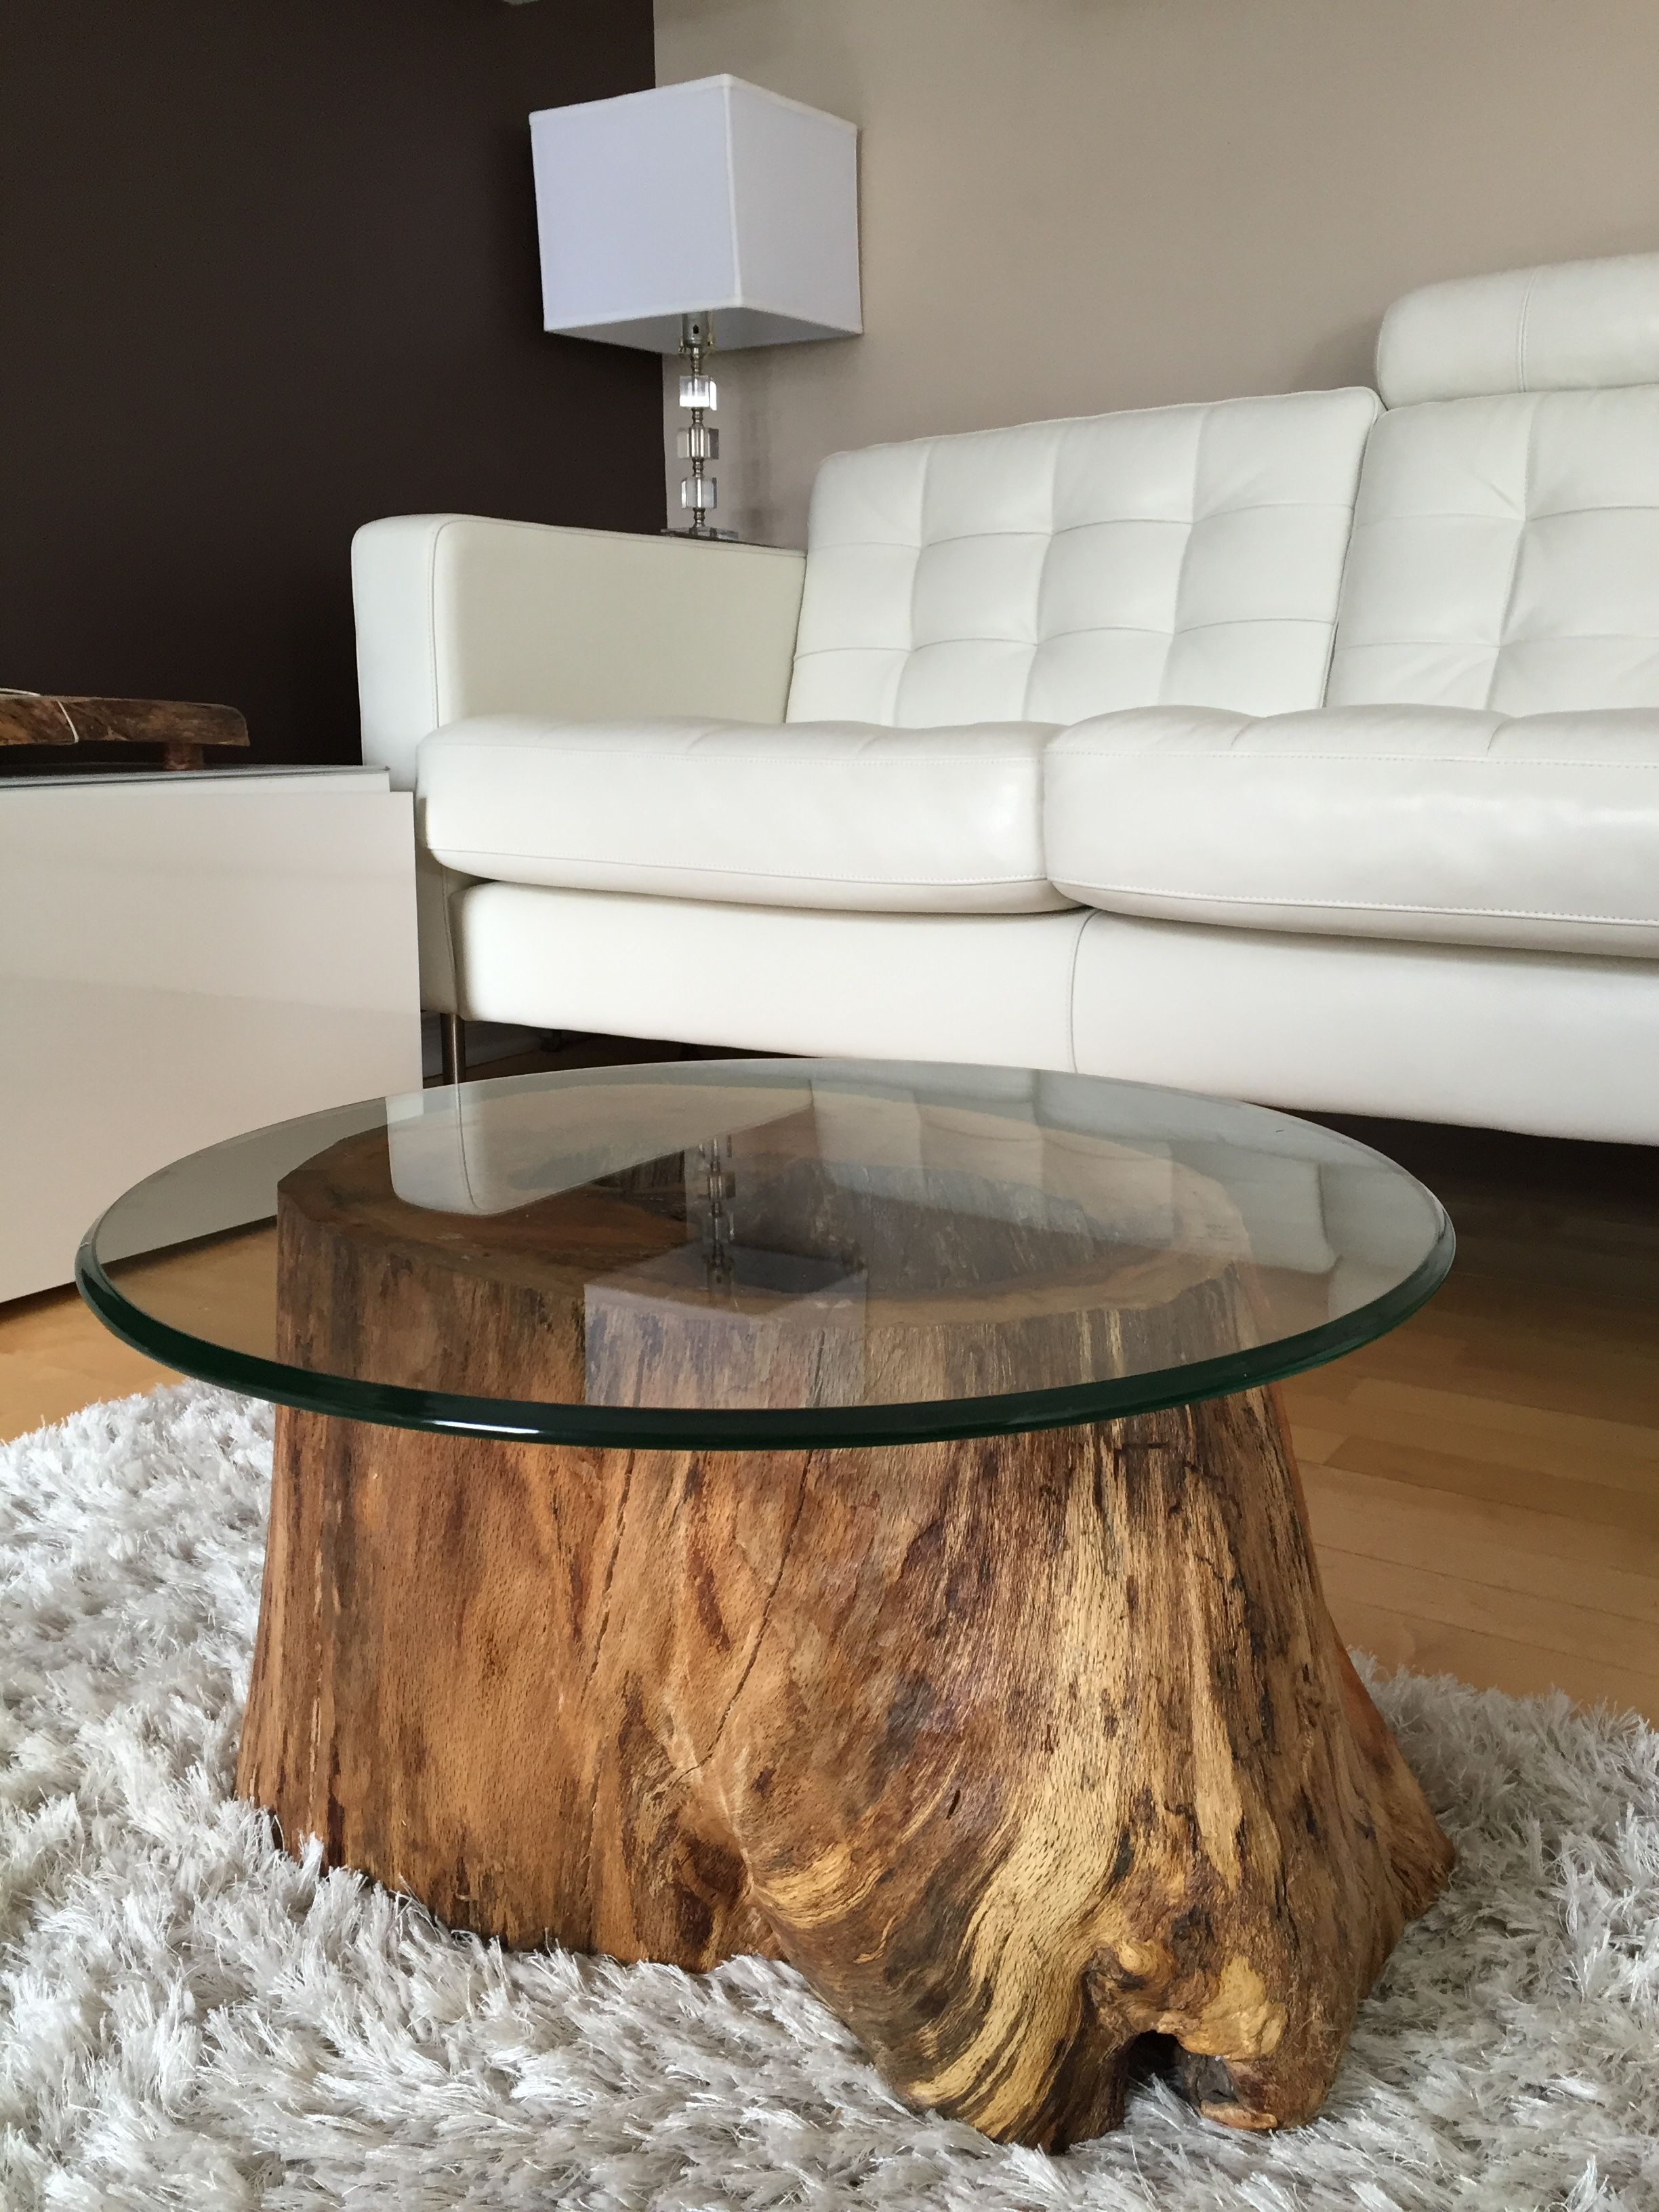 Great Use Of Slabs For A Coffee Table Www Bigwoodslabs Com Wood Furniture Design Solid Wood Furniture Design Coffee Table Farmhouse